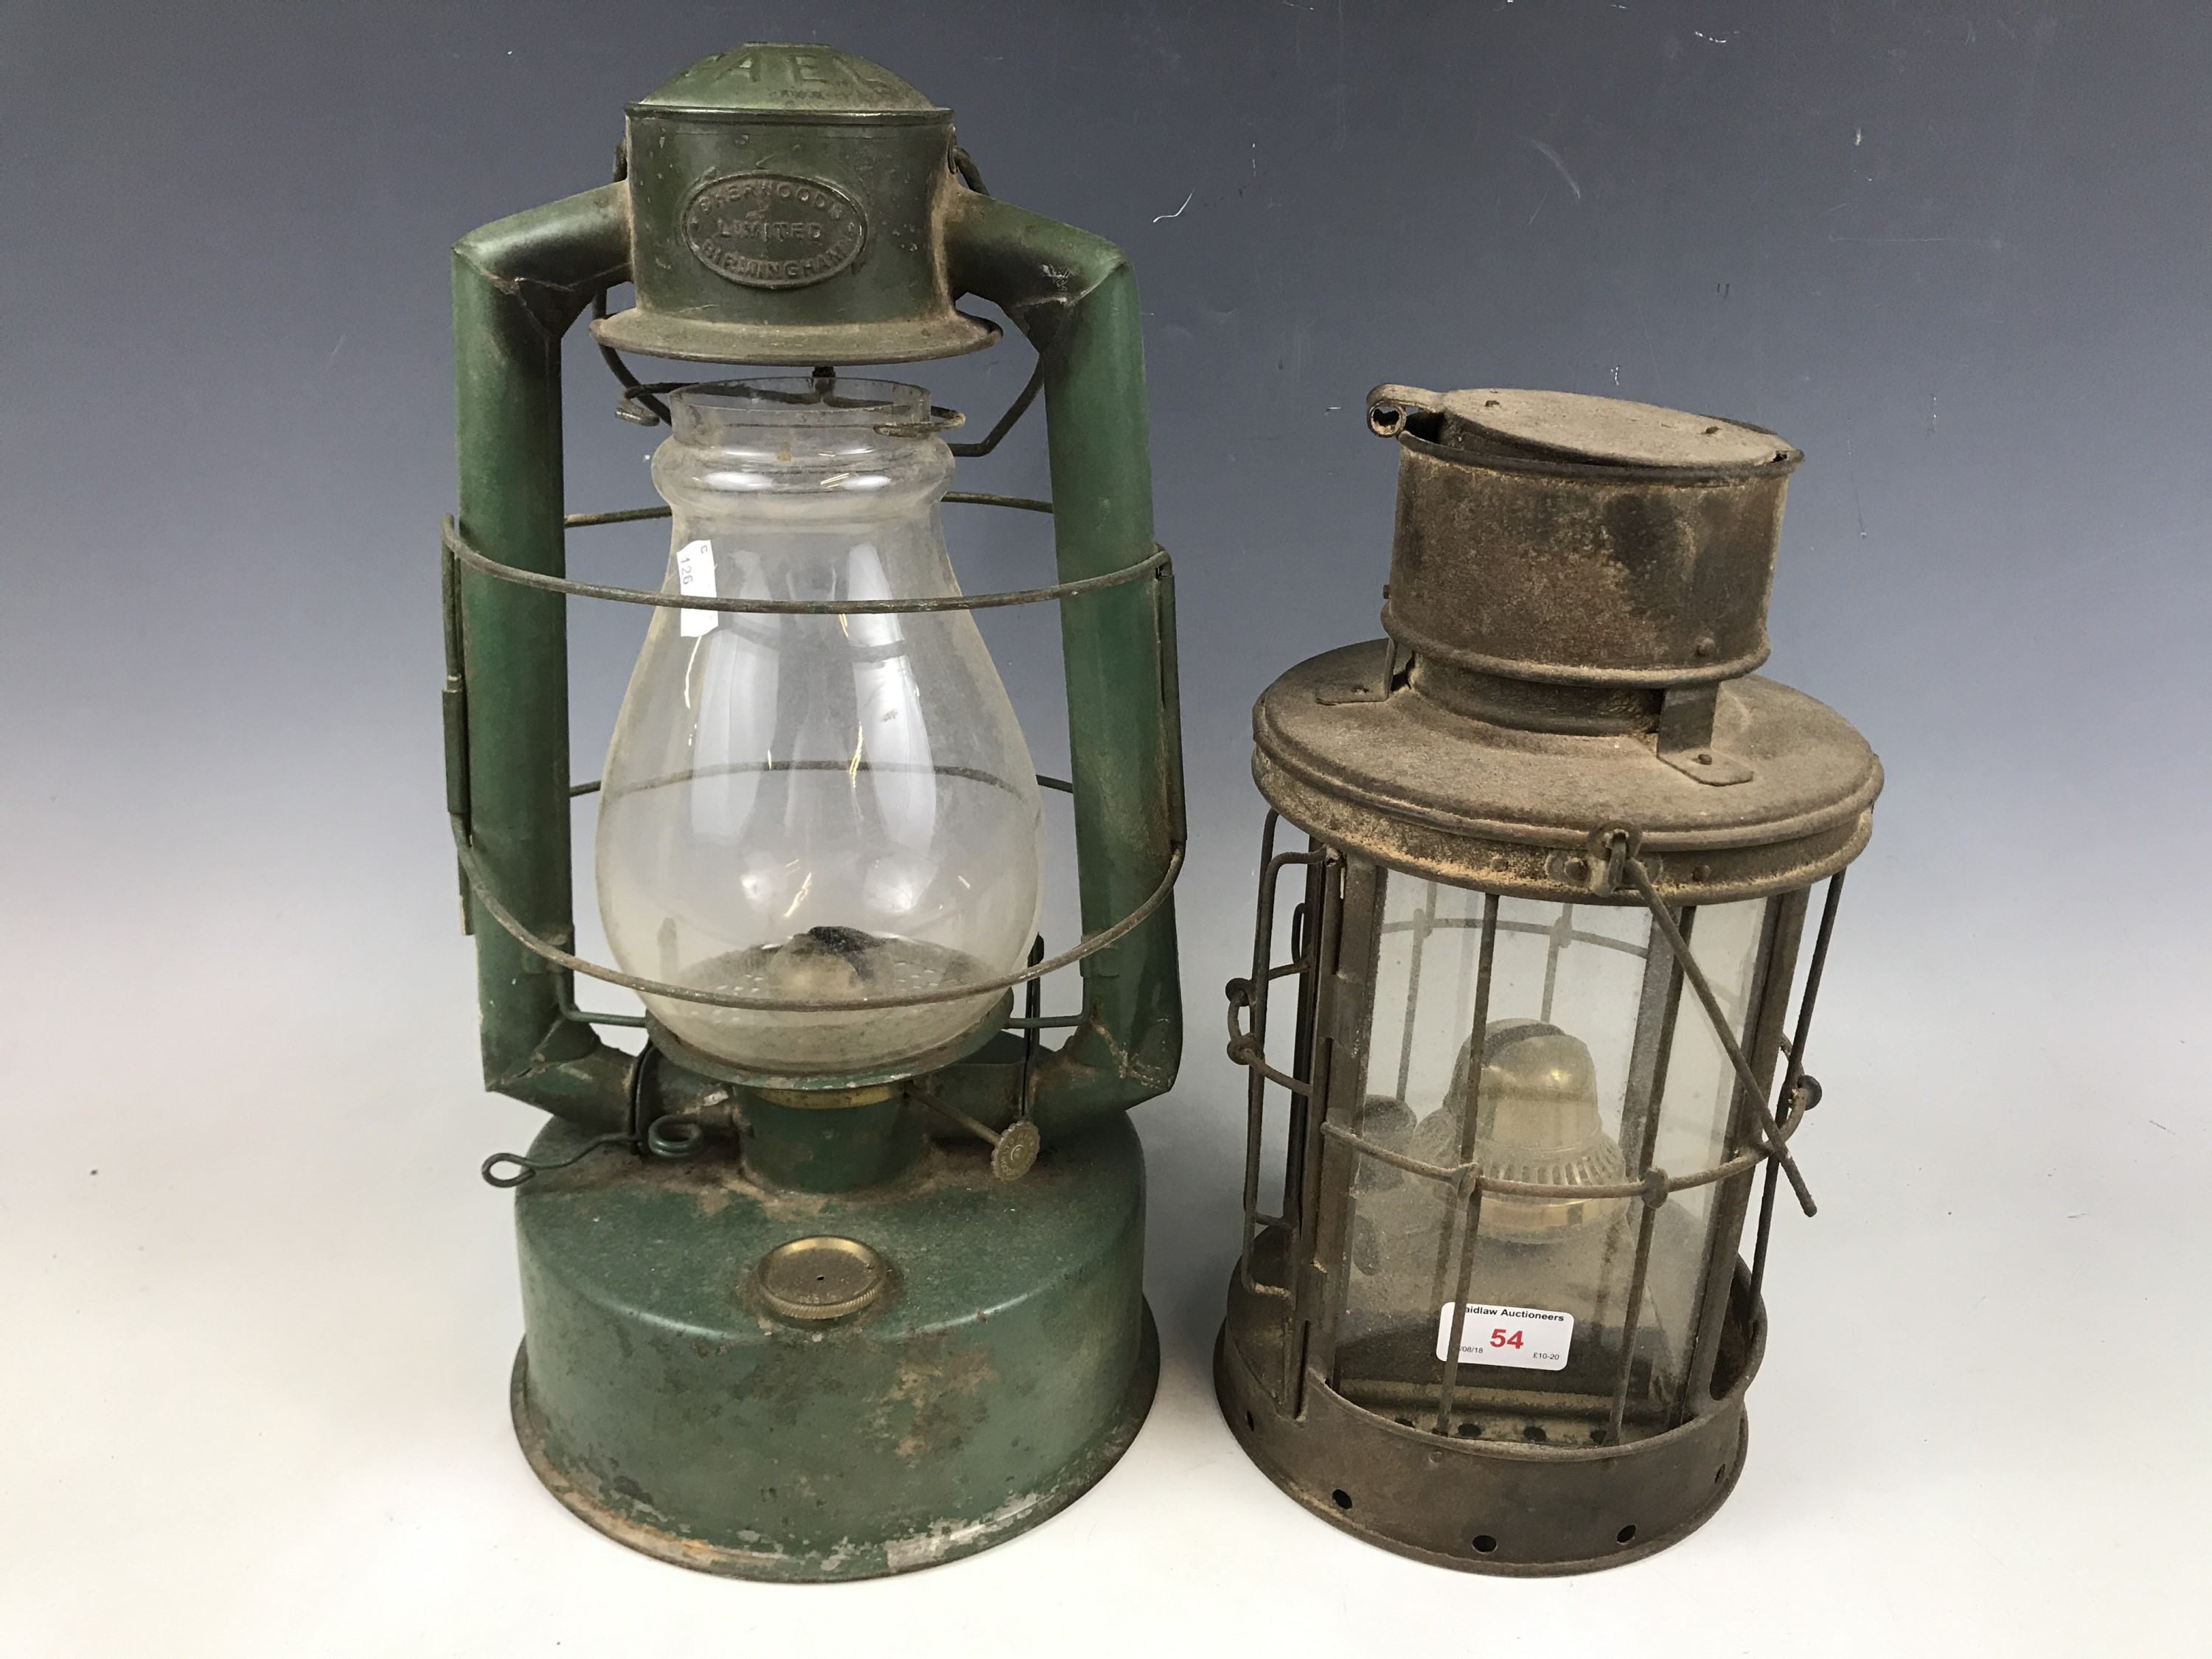 Lot 54 - A vintage Gael Brooder paraffin lamp together with one other